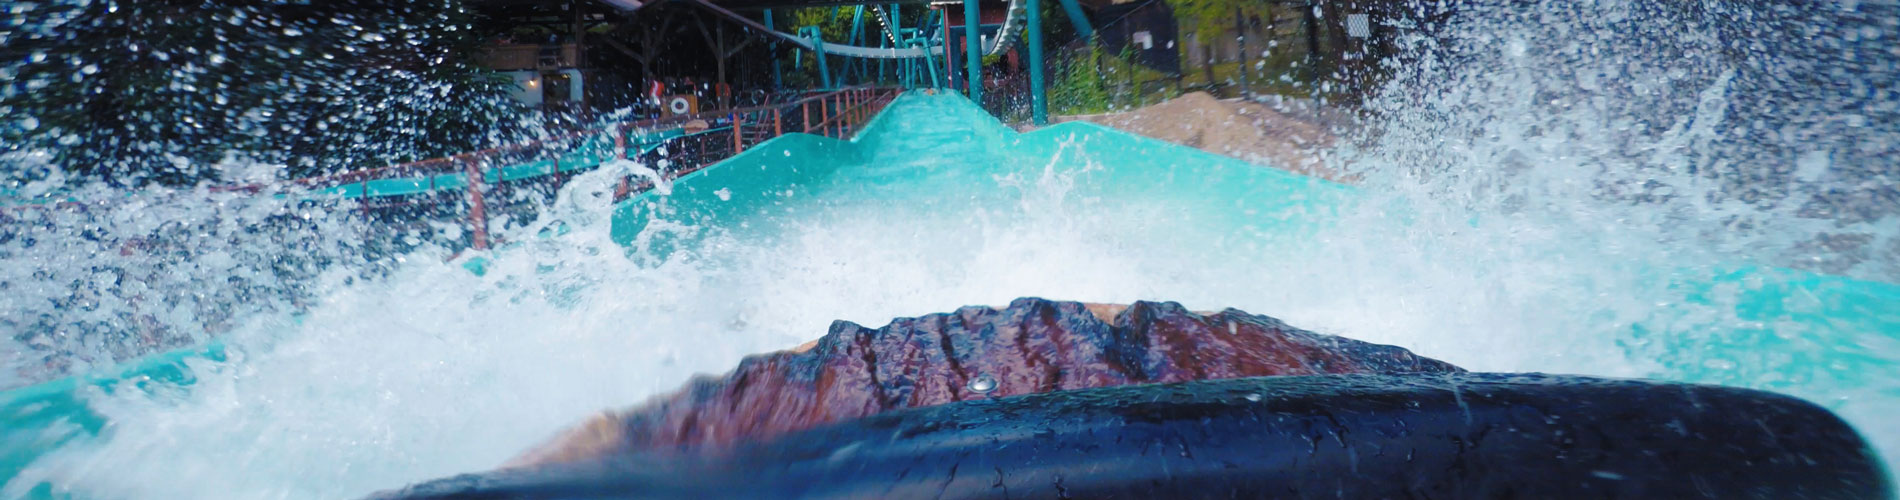 Le Scoot - Log Flume Ride